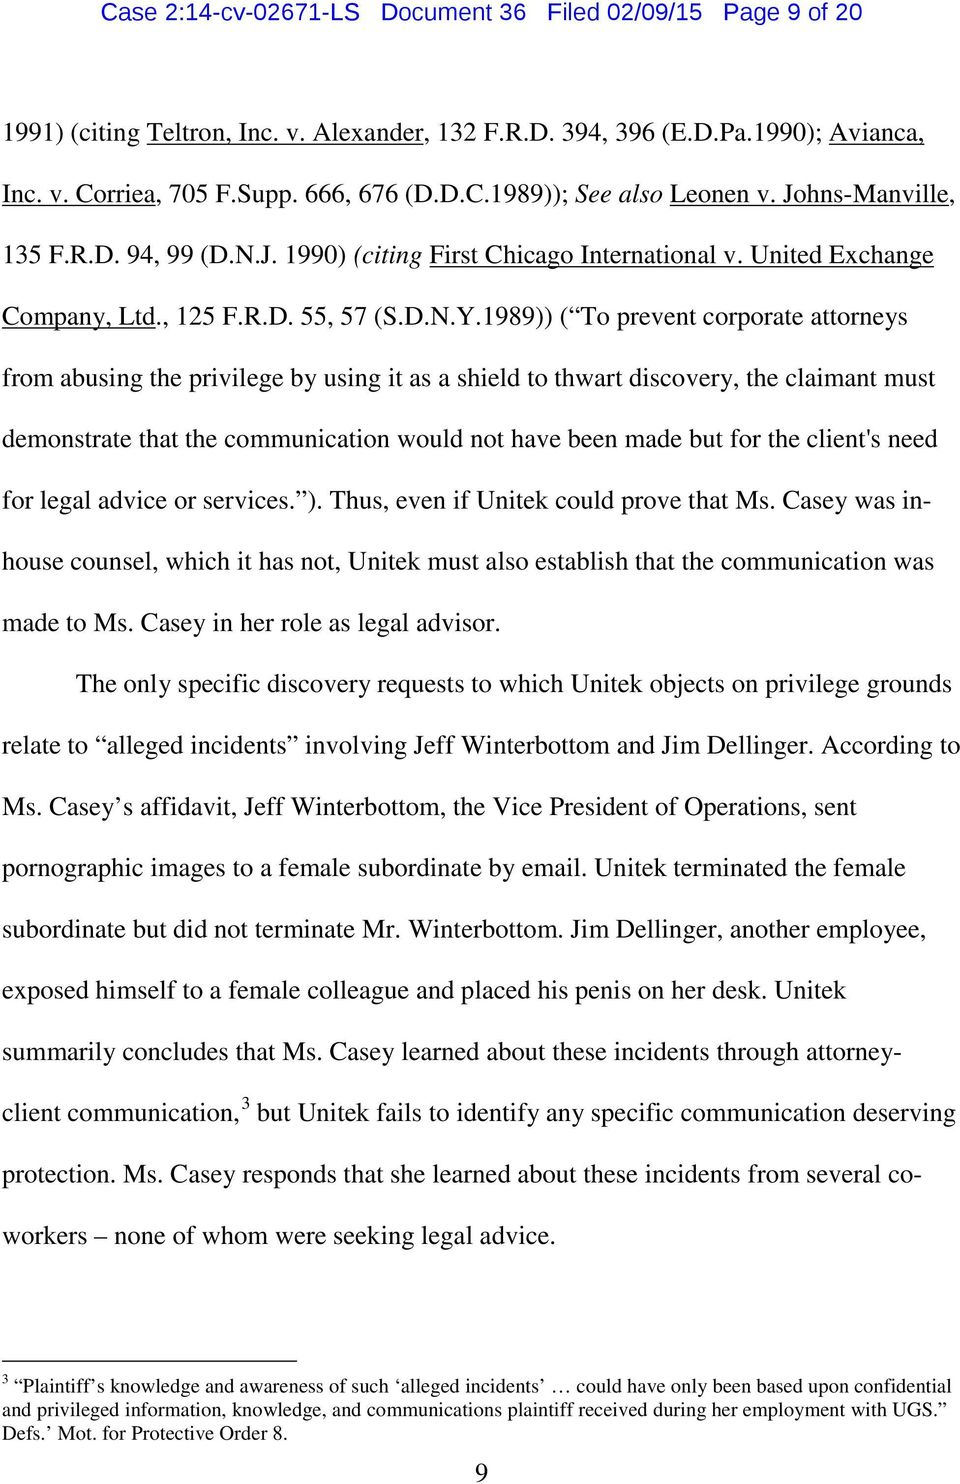 1989)) ( To prevent corporate attorneys from abusing the privilege by using it as a shield to thwart discovery, the claimant must demonstrate that the communication would not have been made but for